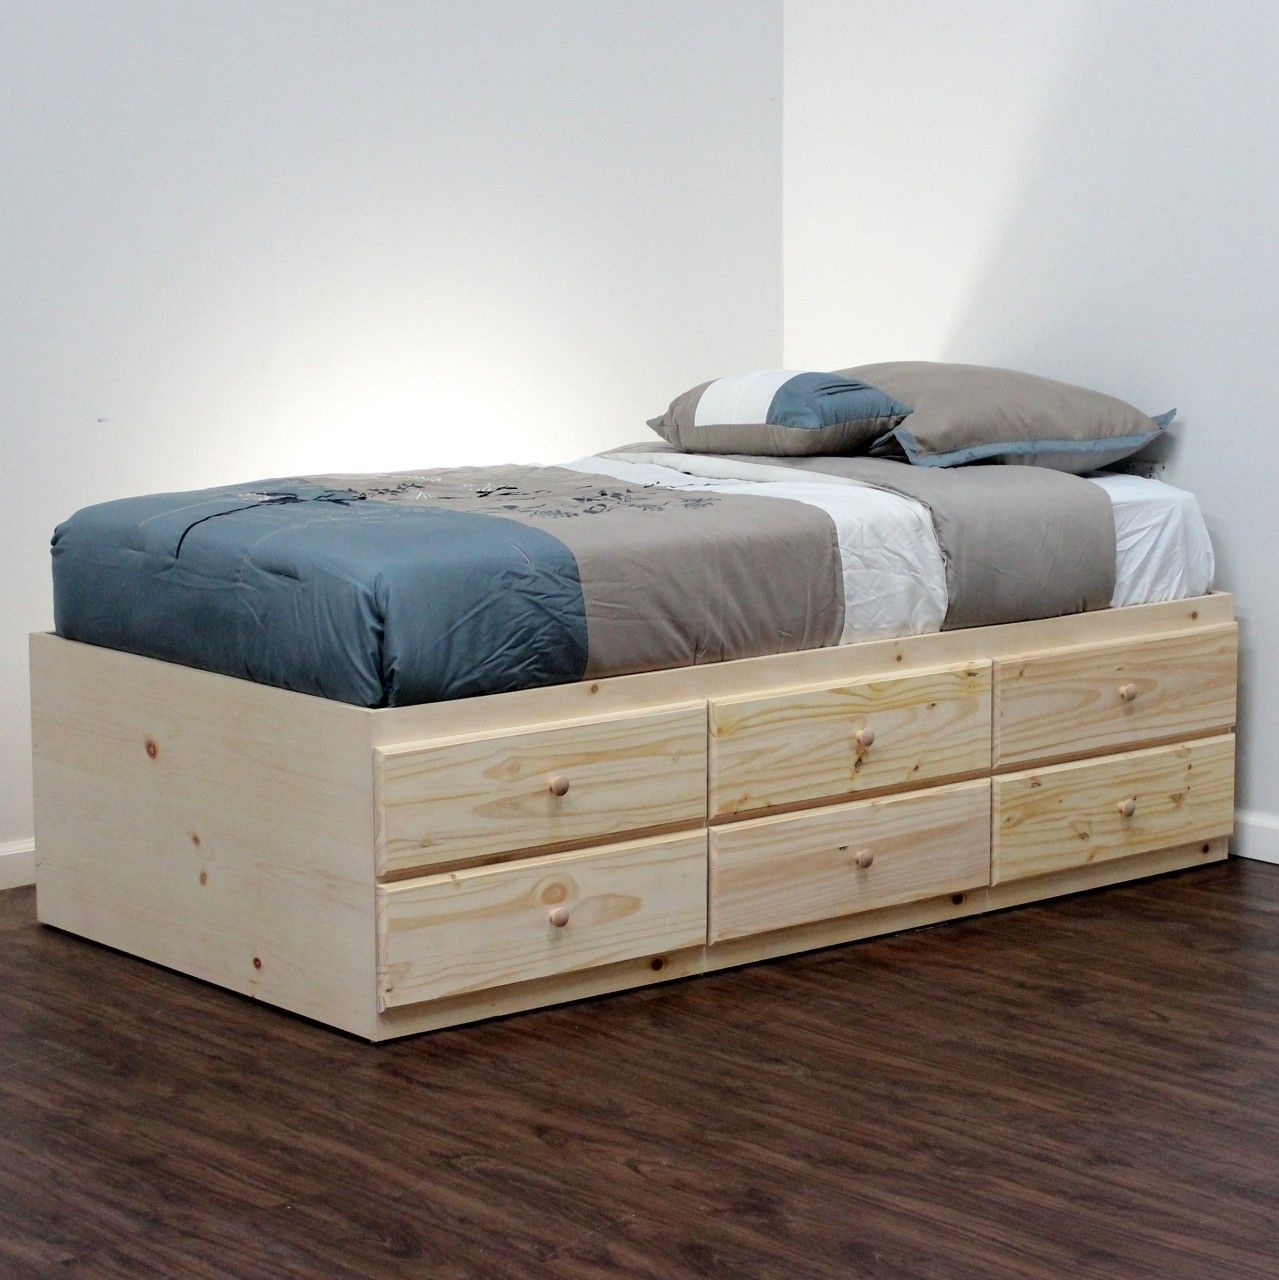 Twin Bed Frames With Storage extra long twin storage bed | pine wood | craft storage, storage